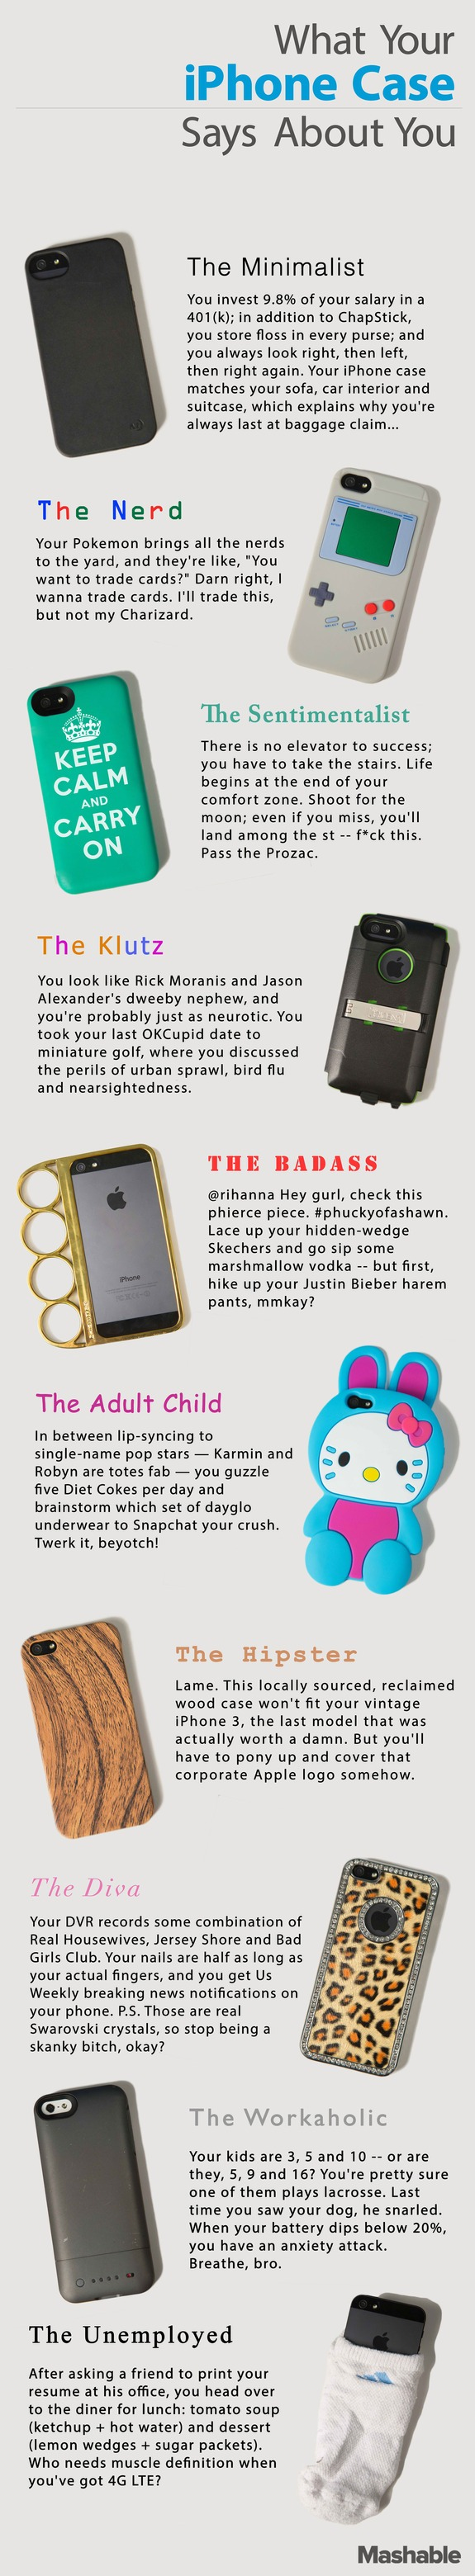 iphone-case-infographic-1.jpg